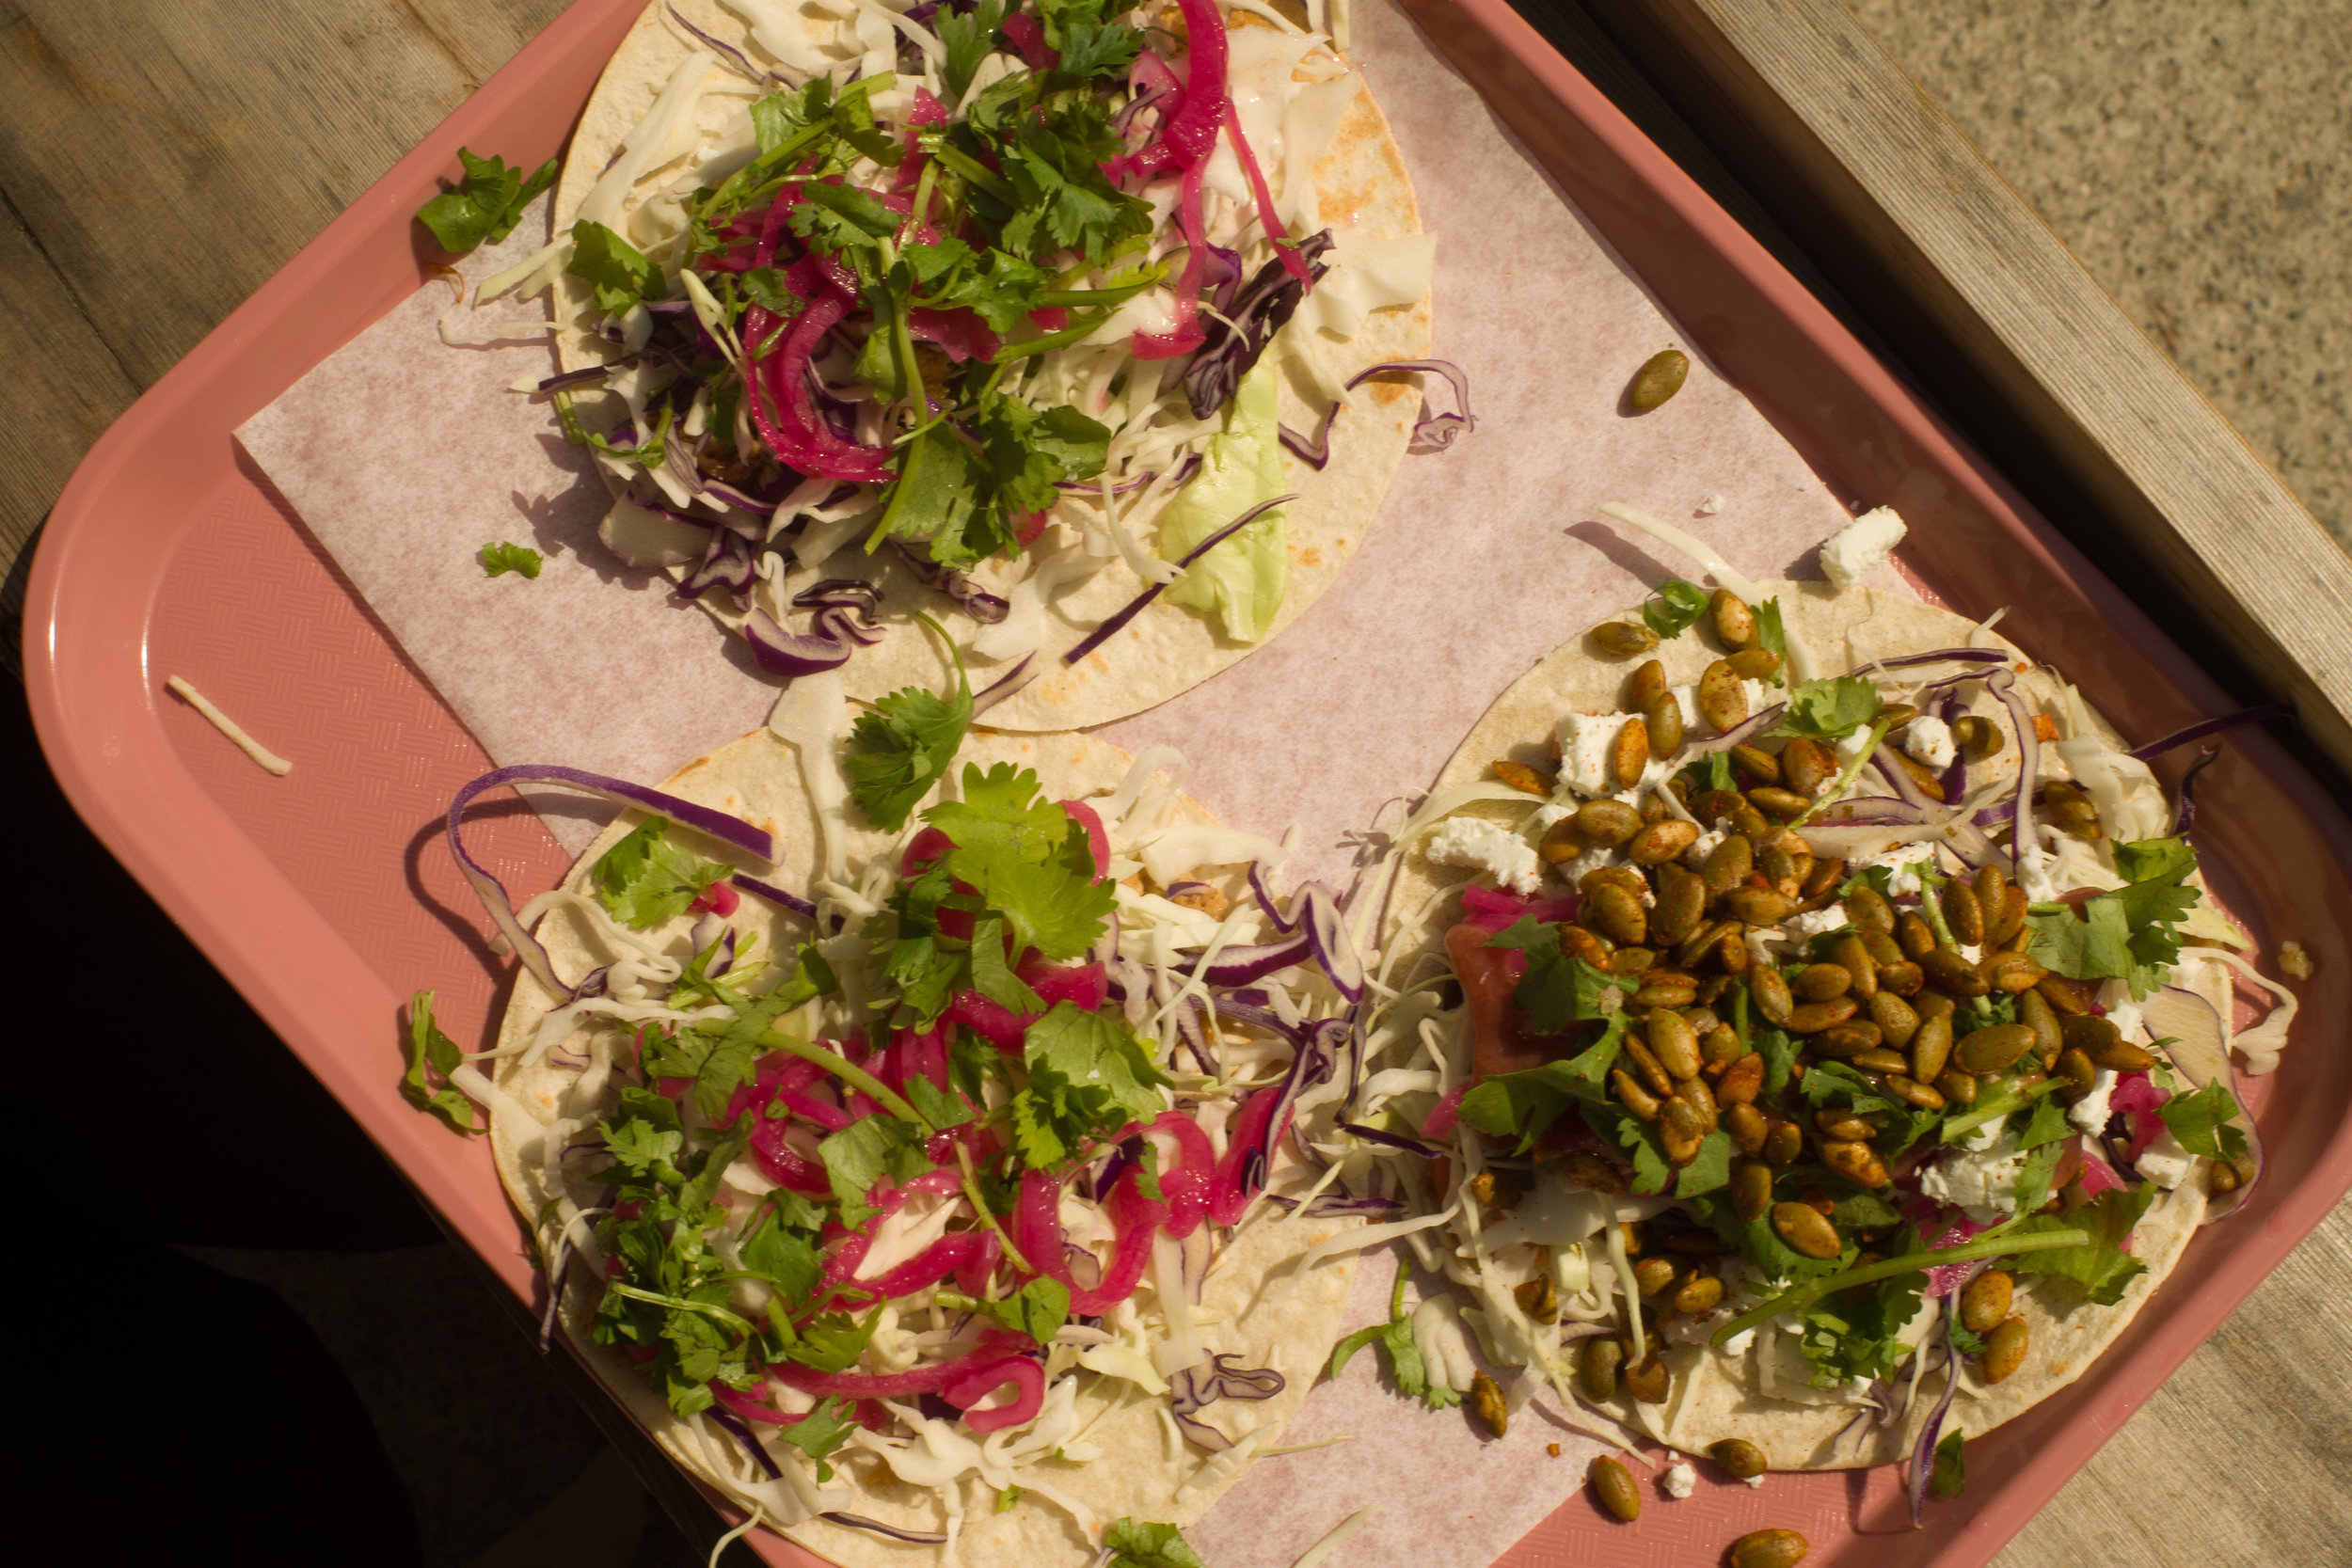 Tacos from Branch upon our arrival.